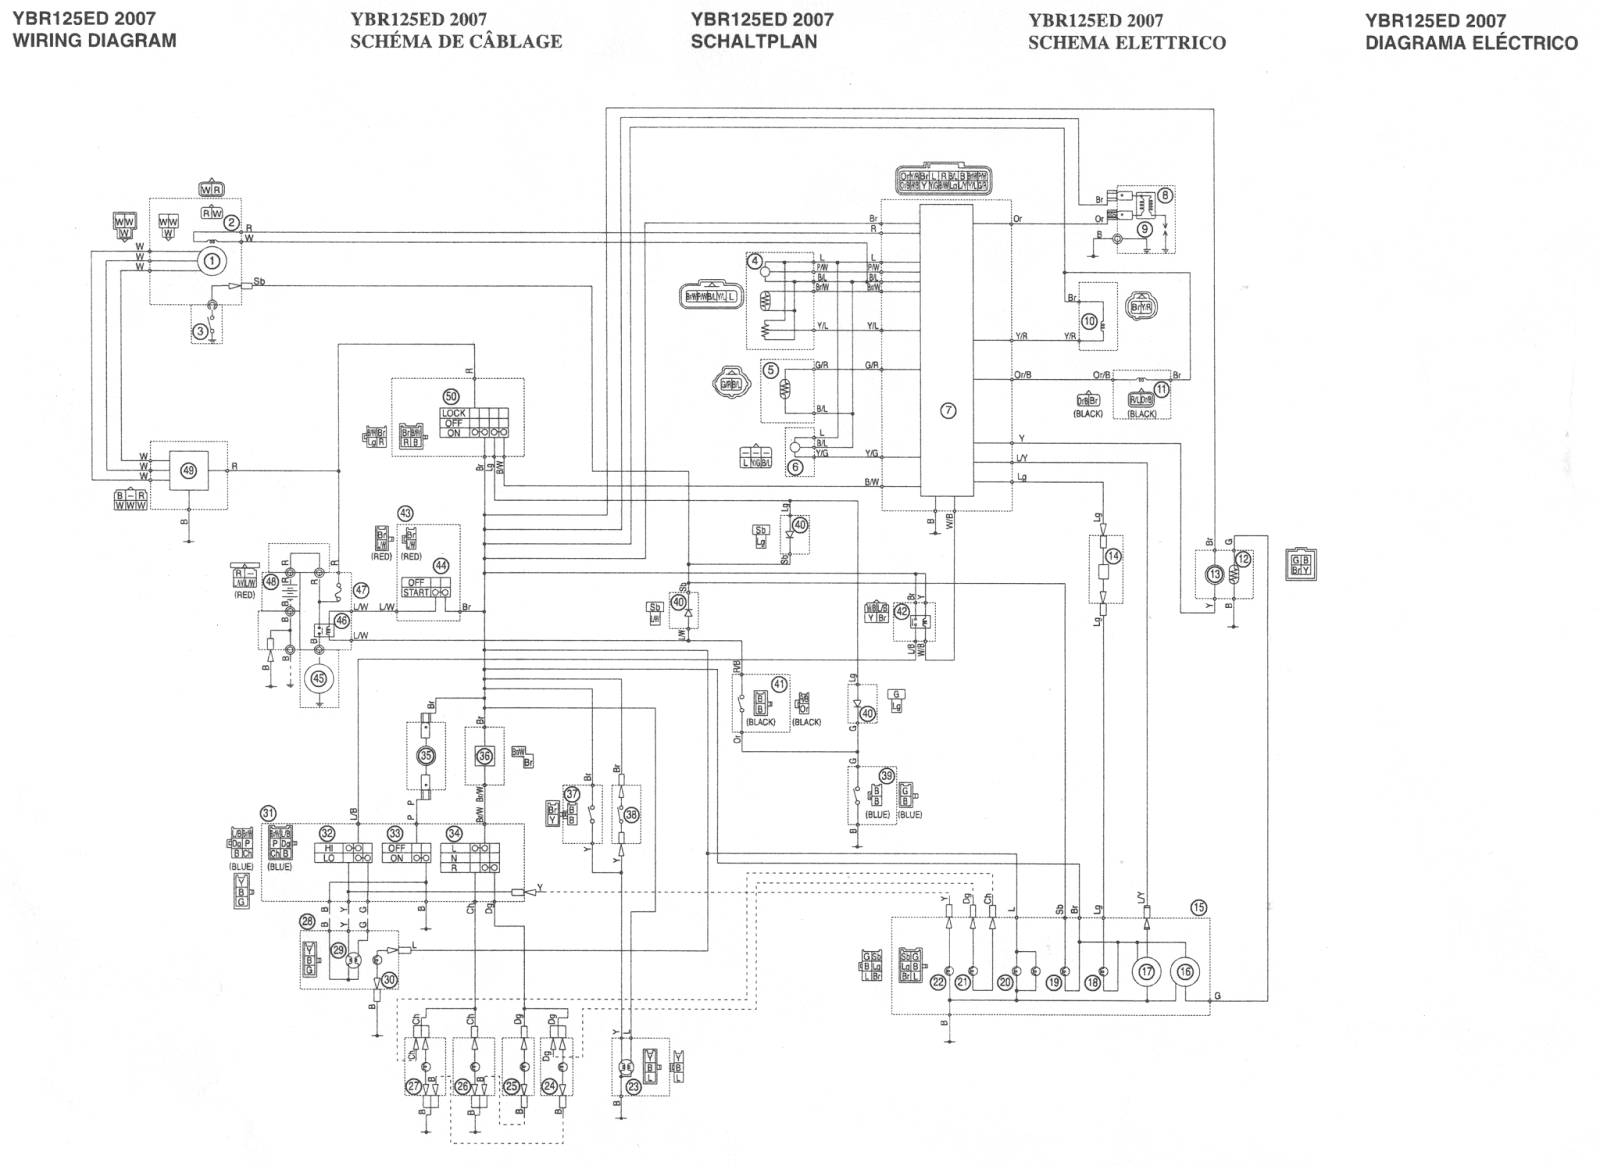 schema yamaha ybr 125 owner blog yamaha ybr 125 electrical system kokusan denki cdi wiring diagram at highcare.asia